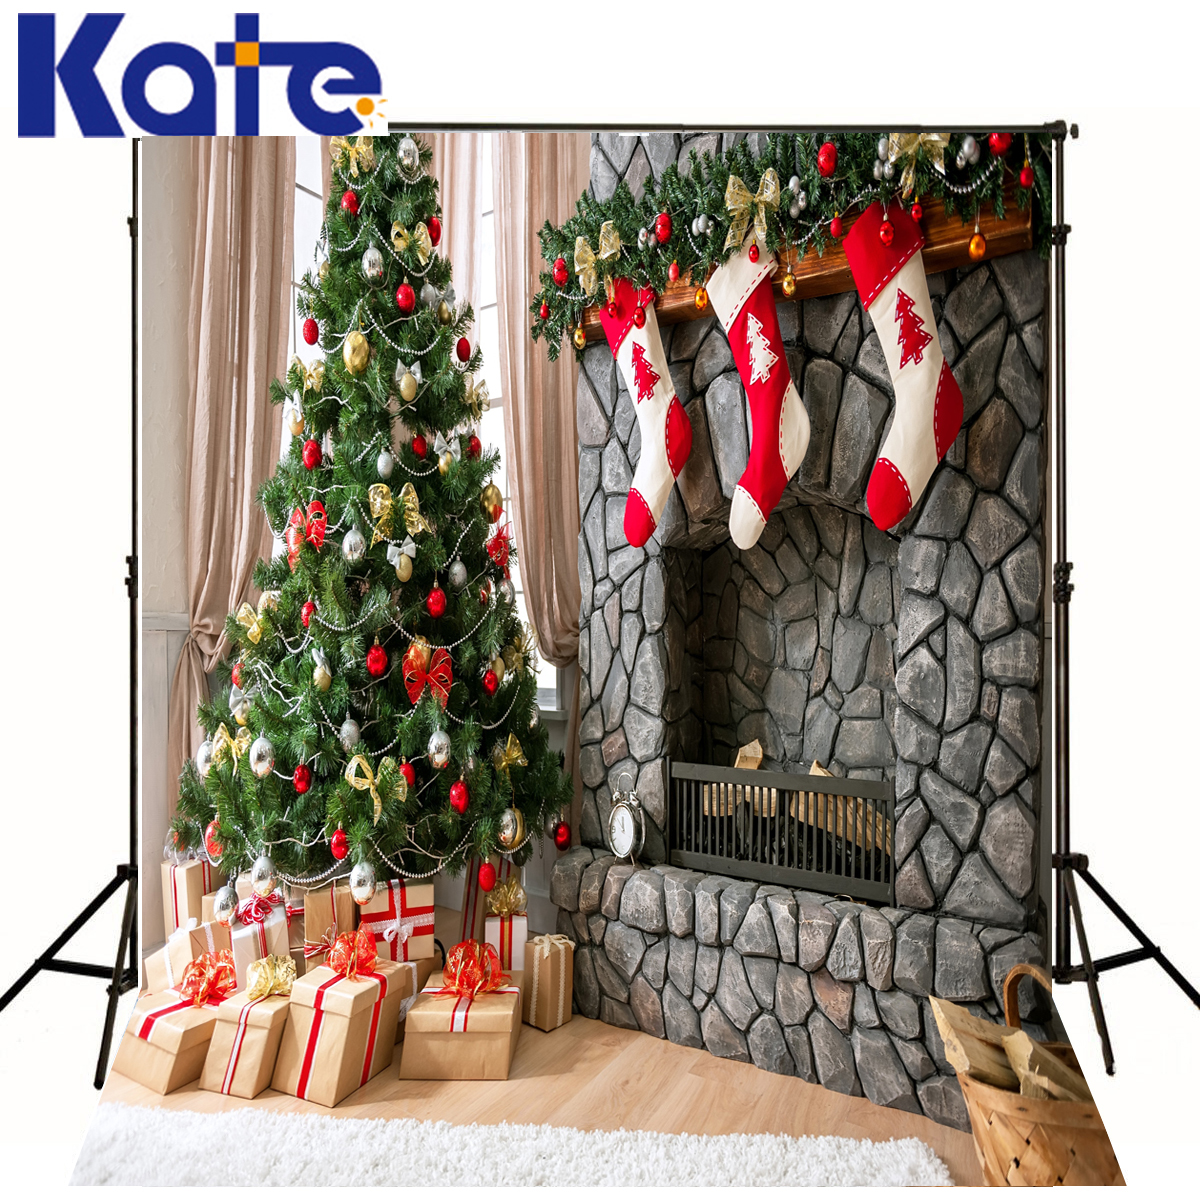 Christmas Backdrop Green Tree Red Socks Photography X-mas Props Background For Photo Fond Studio Shoot Camera Child Kate kate christmas background photography no wrinkle seamless red snow backdrops for photography photo booth fond studio 7x5ft